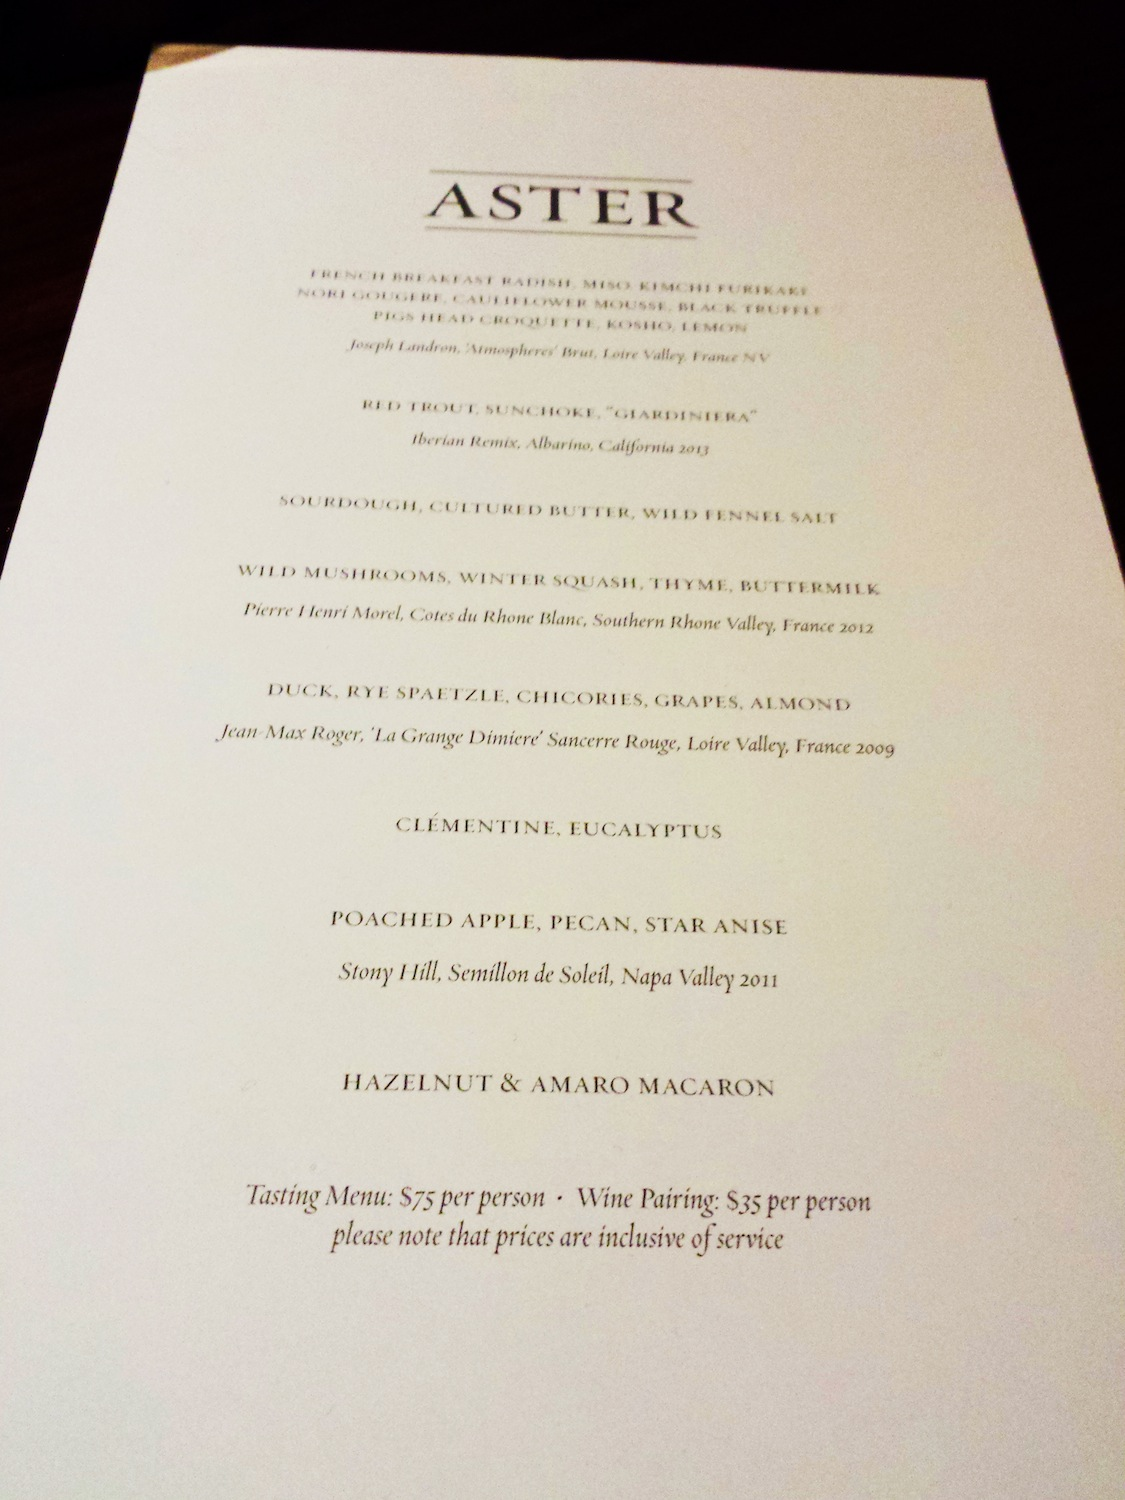 Aster pop-up at Coi